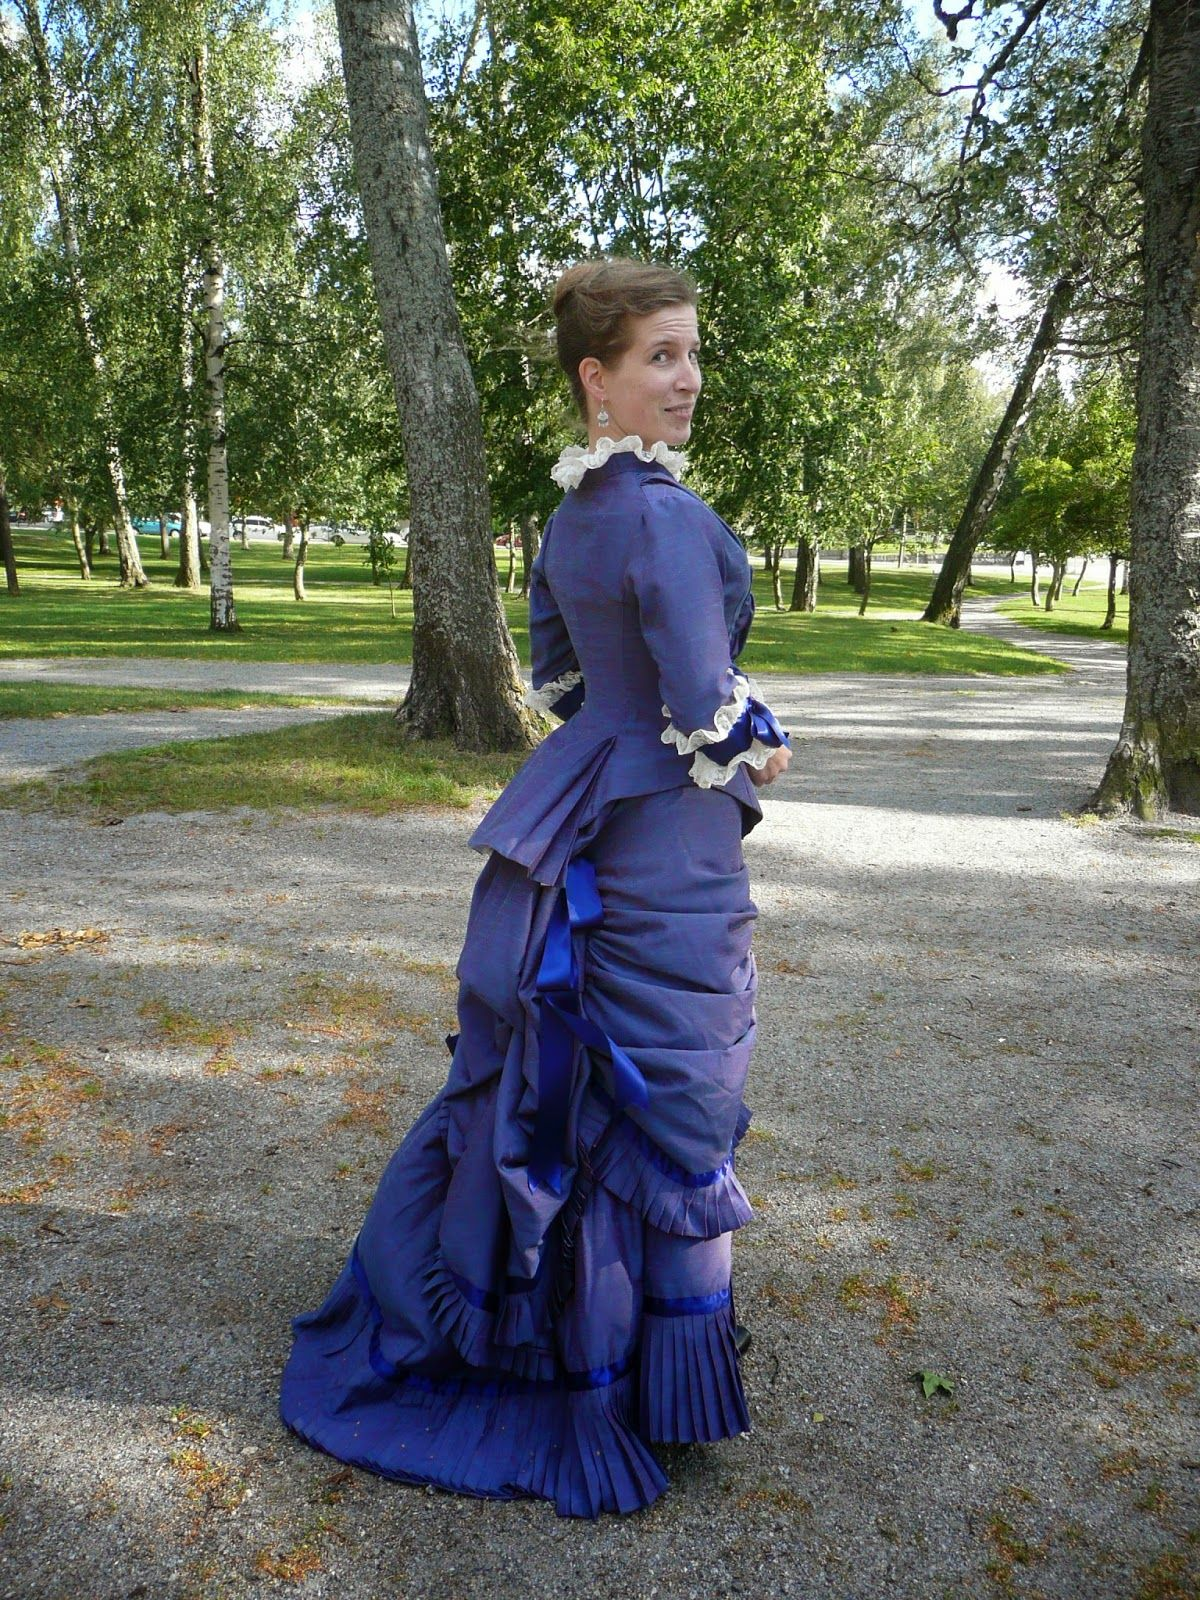 The 1880 Courtois dress: Finished and photographed!